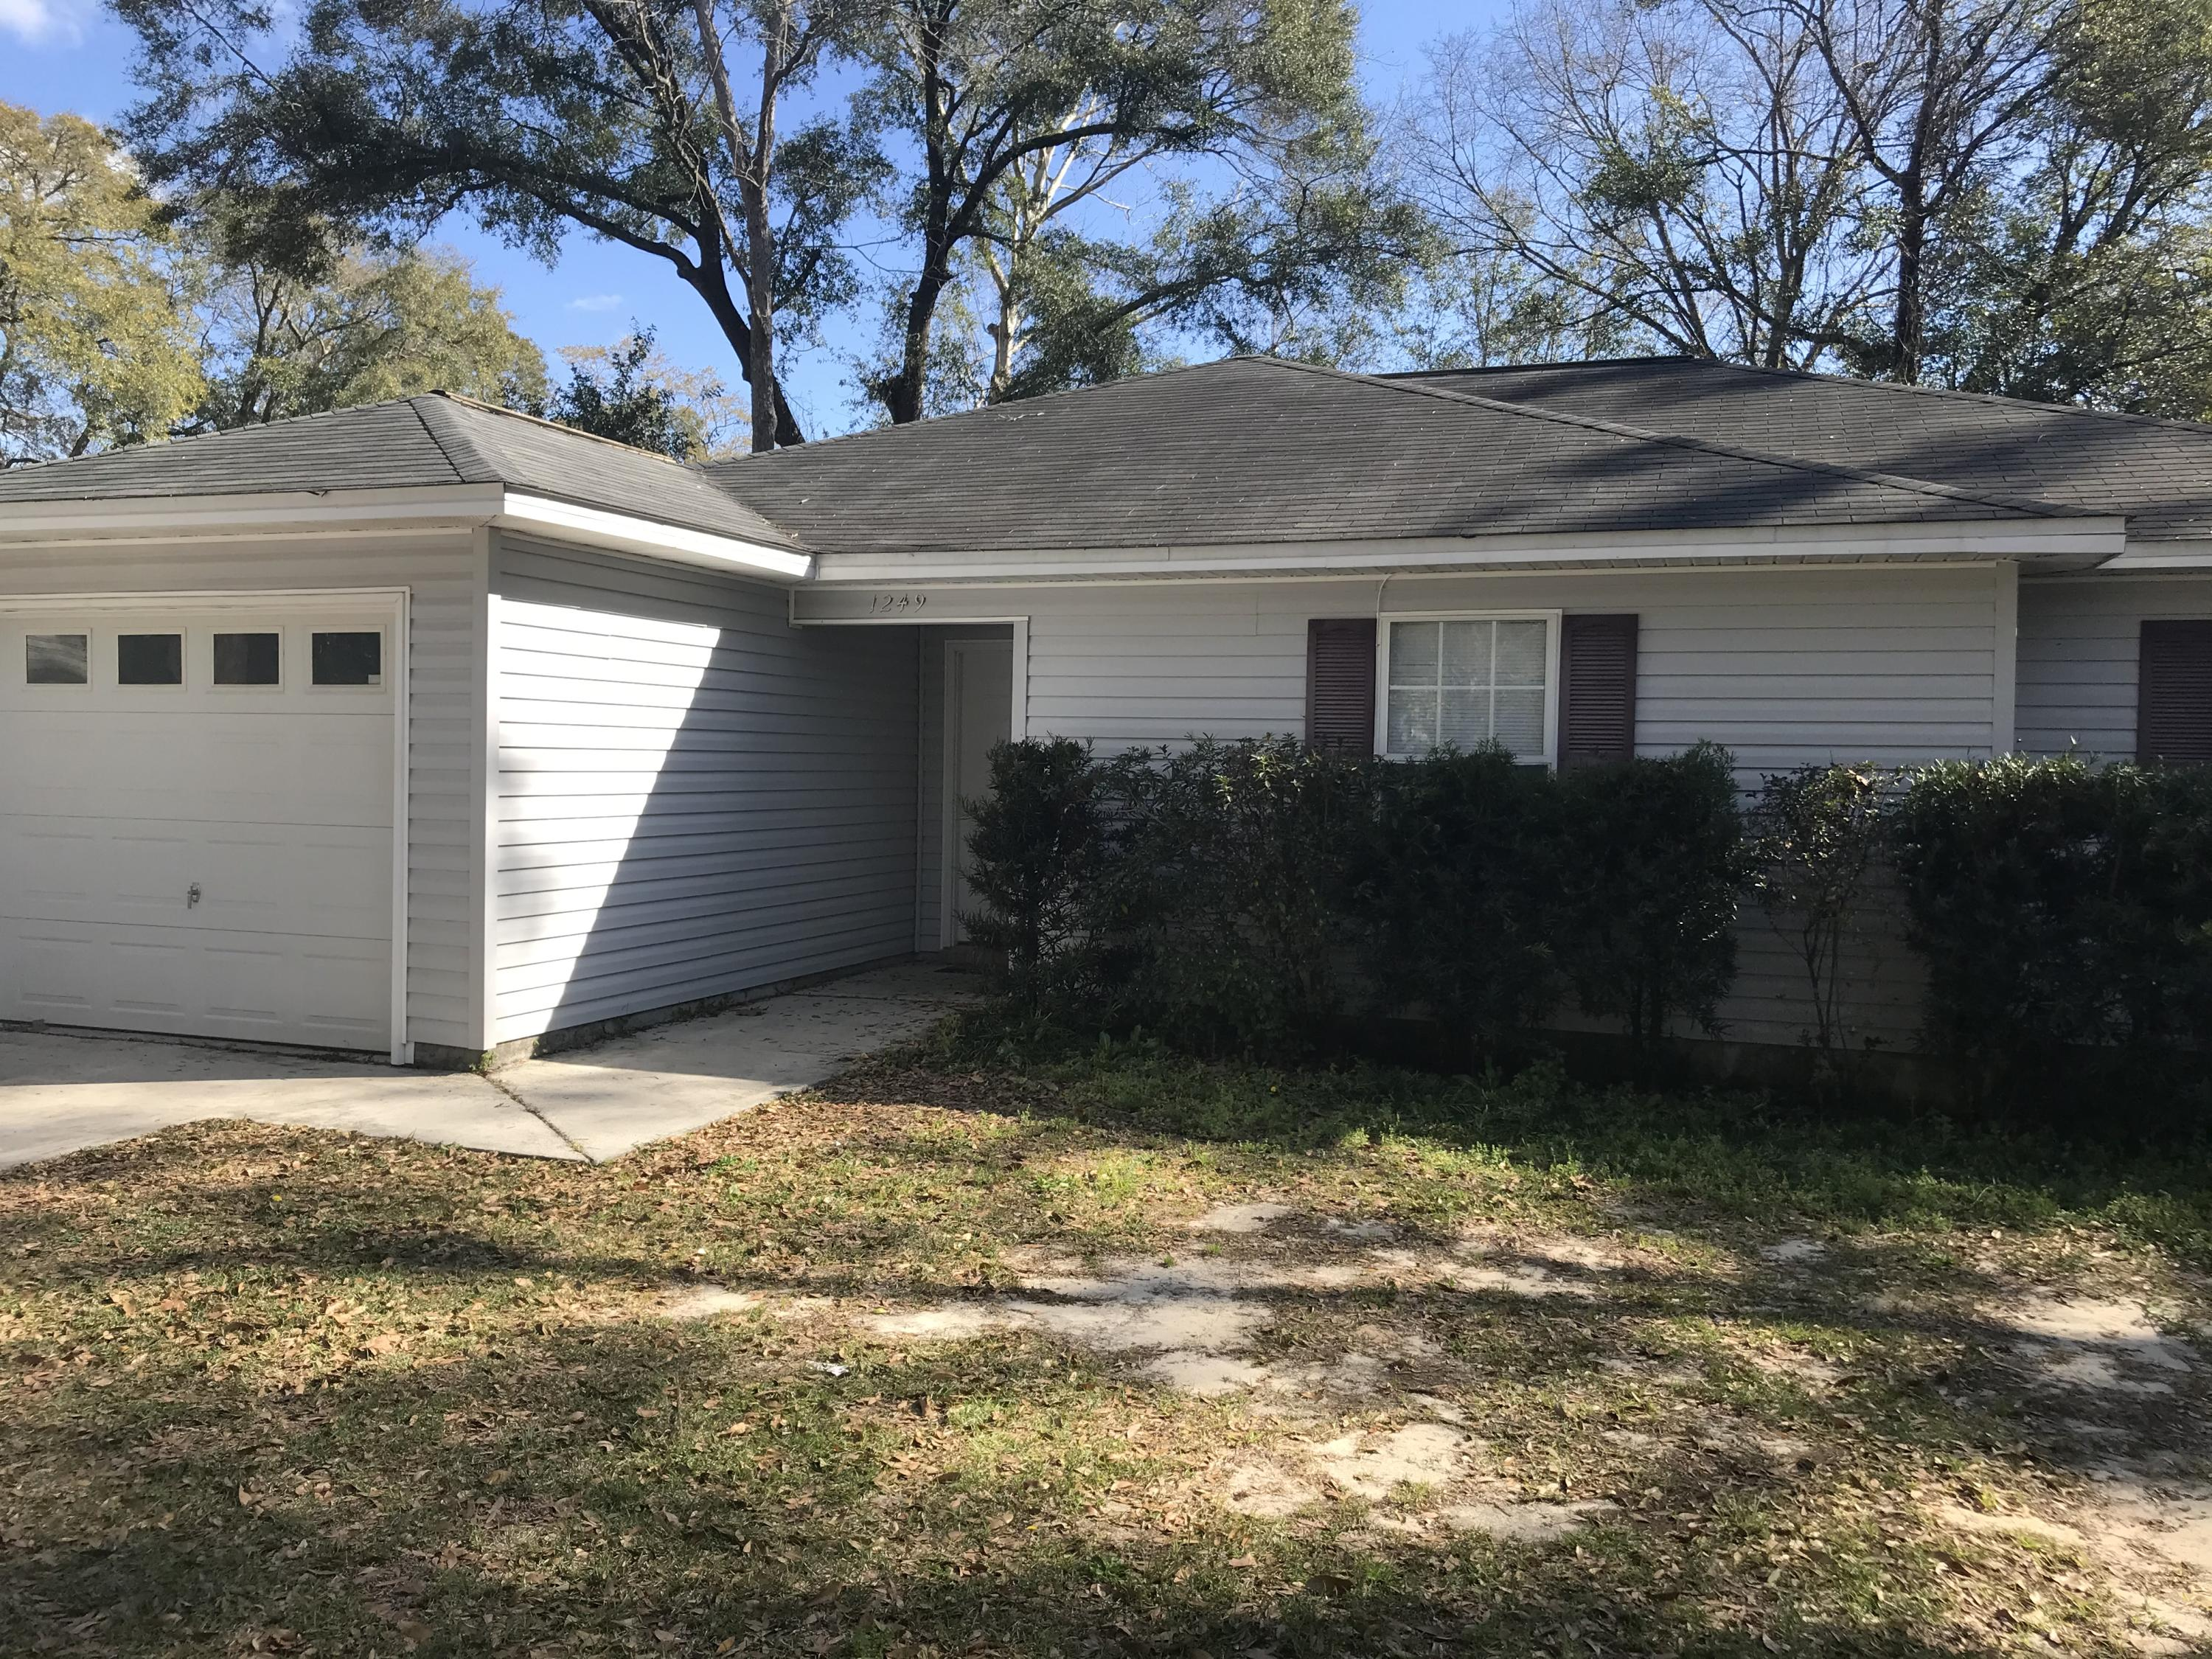 Photo of home for sale at 1249 1st, Crestview FL